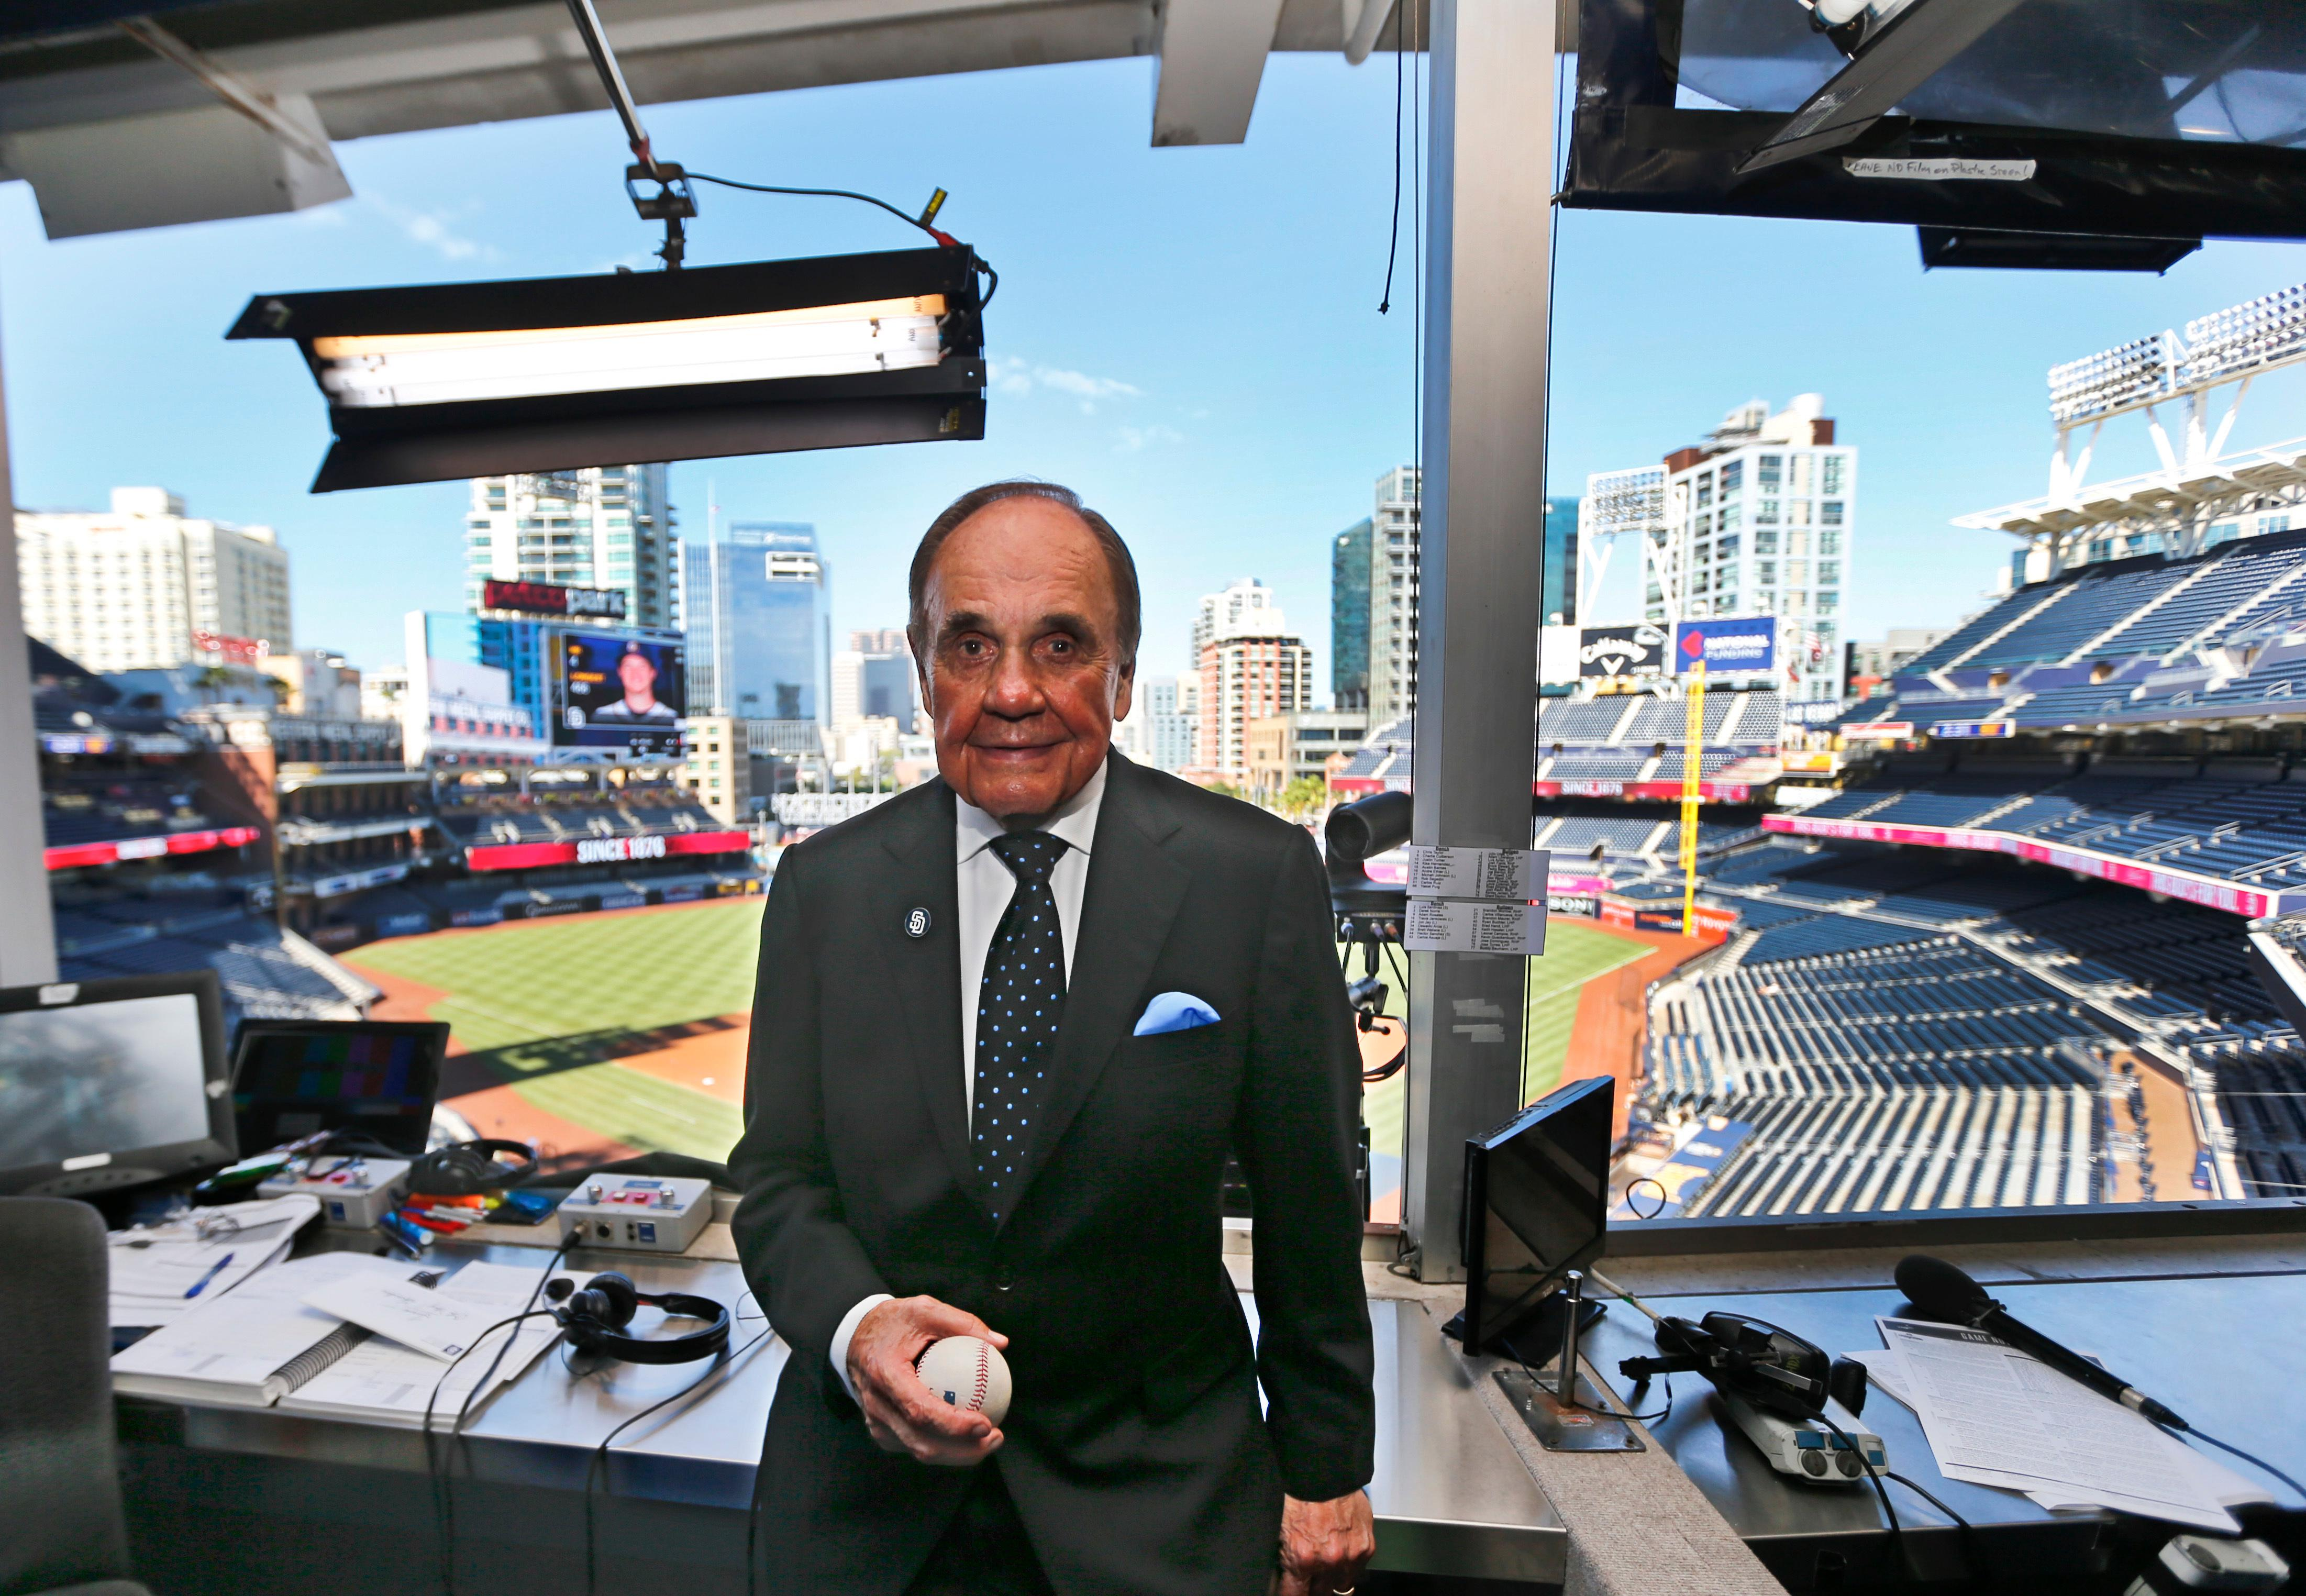 FILE - In this Sept. 29, 2016, file photo, Dick Enberg, the voice of the San Diego Padres, poses in his booth prior to the Padres' final home baseball game of the season in San Diego. Enberg, the sportscaster who got his big break with UCLA basketball and went on to call Super Bowls, Olympics, Final Fours and Angels and Padres baseball games, died Thursday, Dec. 21, 2017. He was 82. Engberg's daughter, Nicole, confirmed the death to The Associated Press. She said the family became concerned when he didn't arrive on his flight to Boston on Thursday, and that he was found dead at his home in La Jolla, a San Diego neighborhood. (AP Photo/Lenny Ignelzi, File)